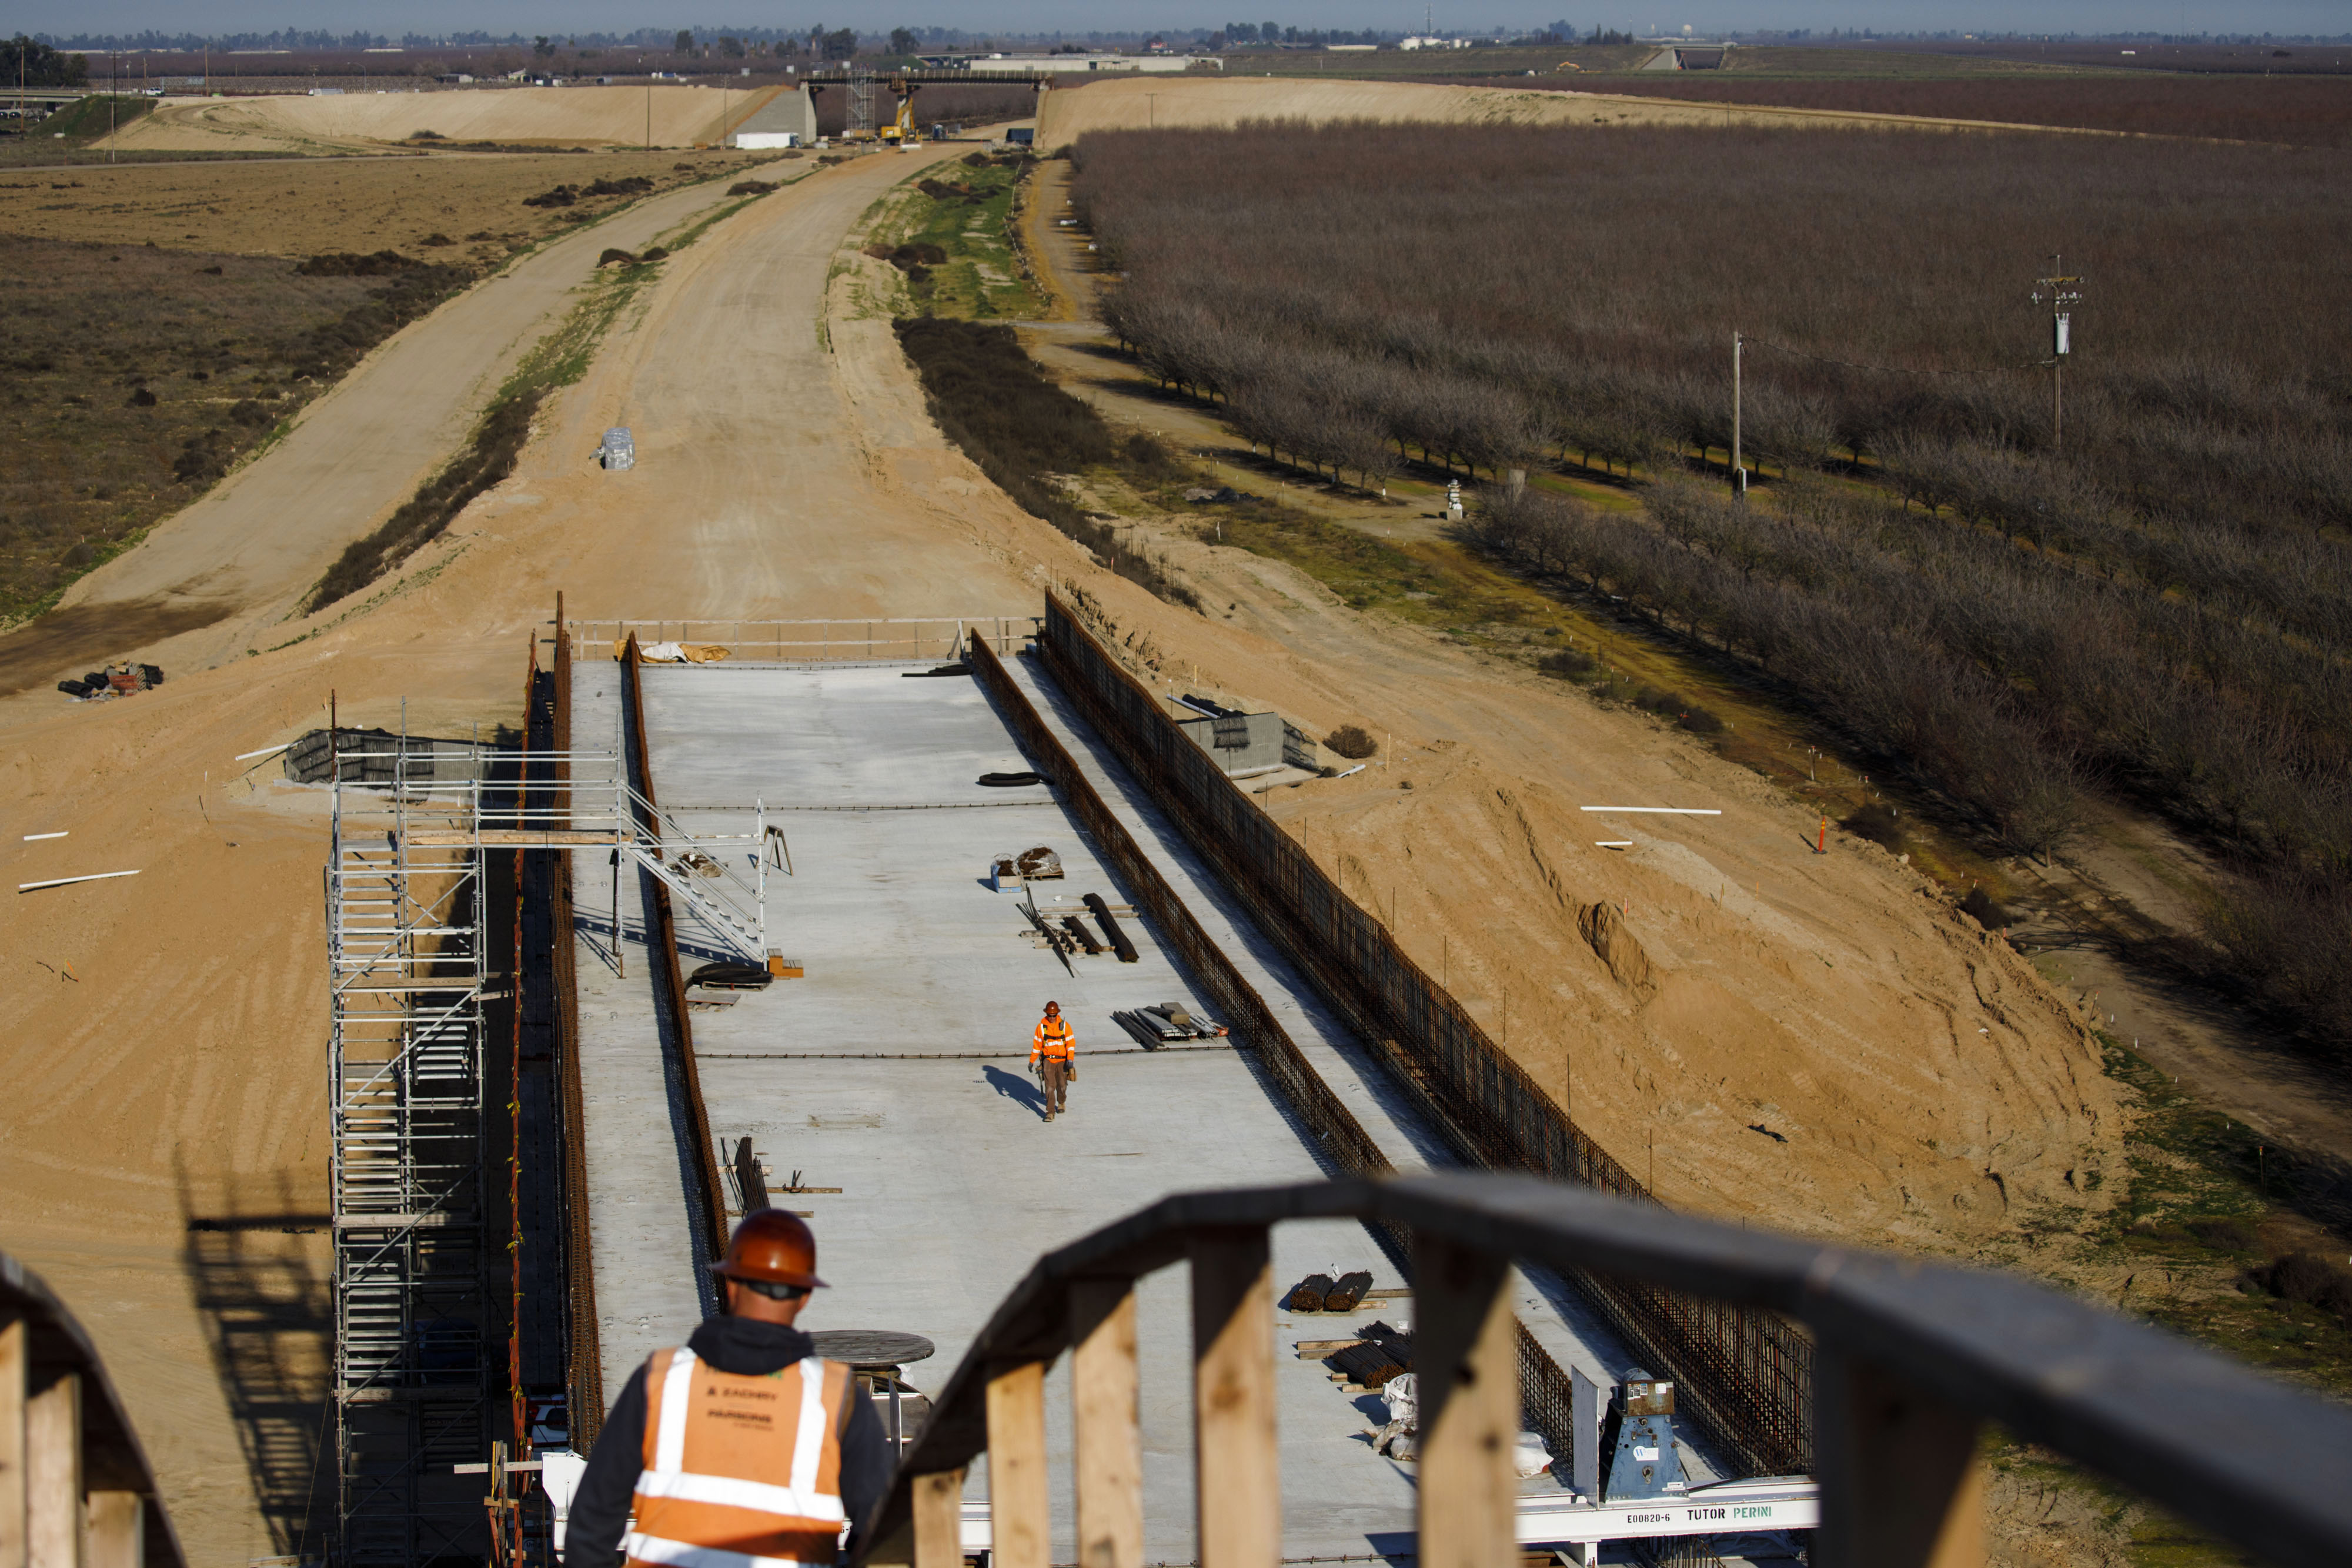 Contractors work during construction on the San Joaquin River viaduct section of a high-speed rail project in Madera, California on Feb. 13, 2020.